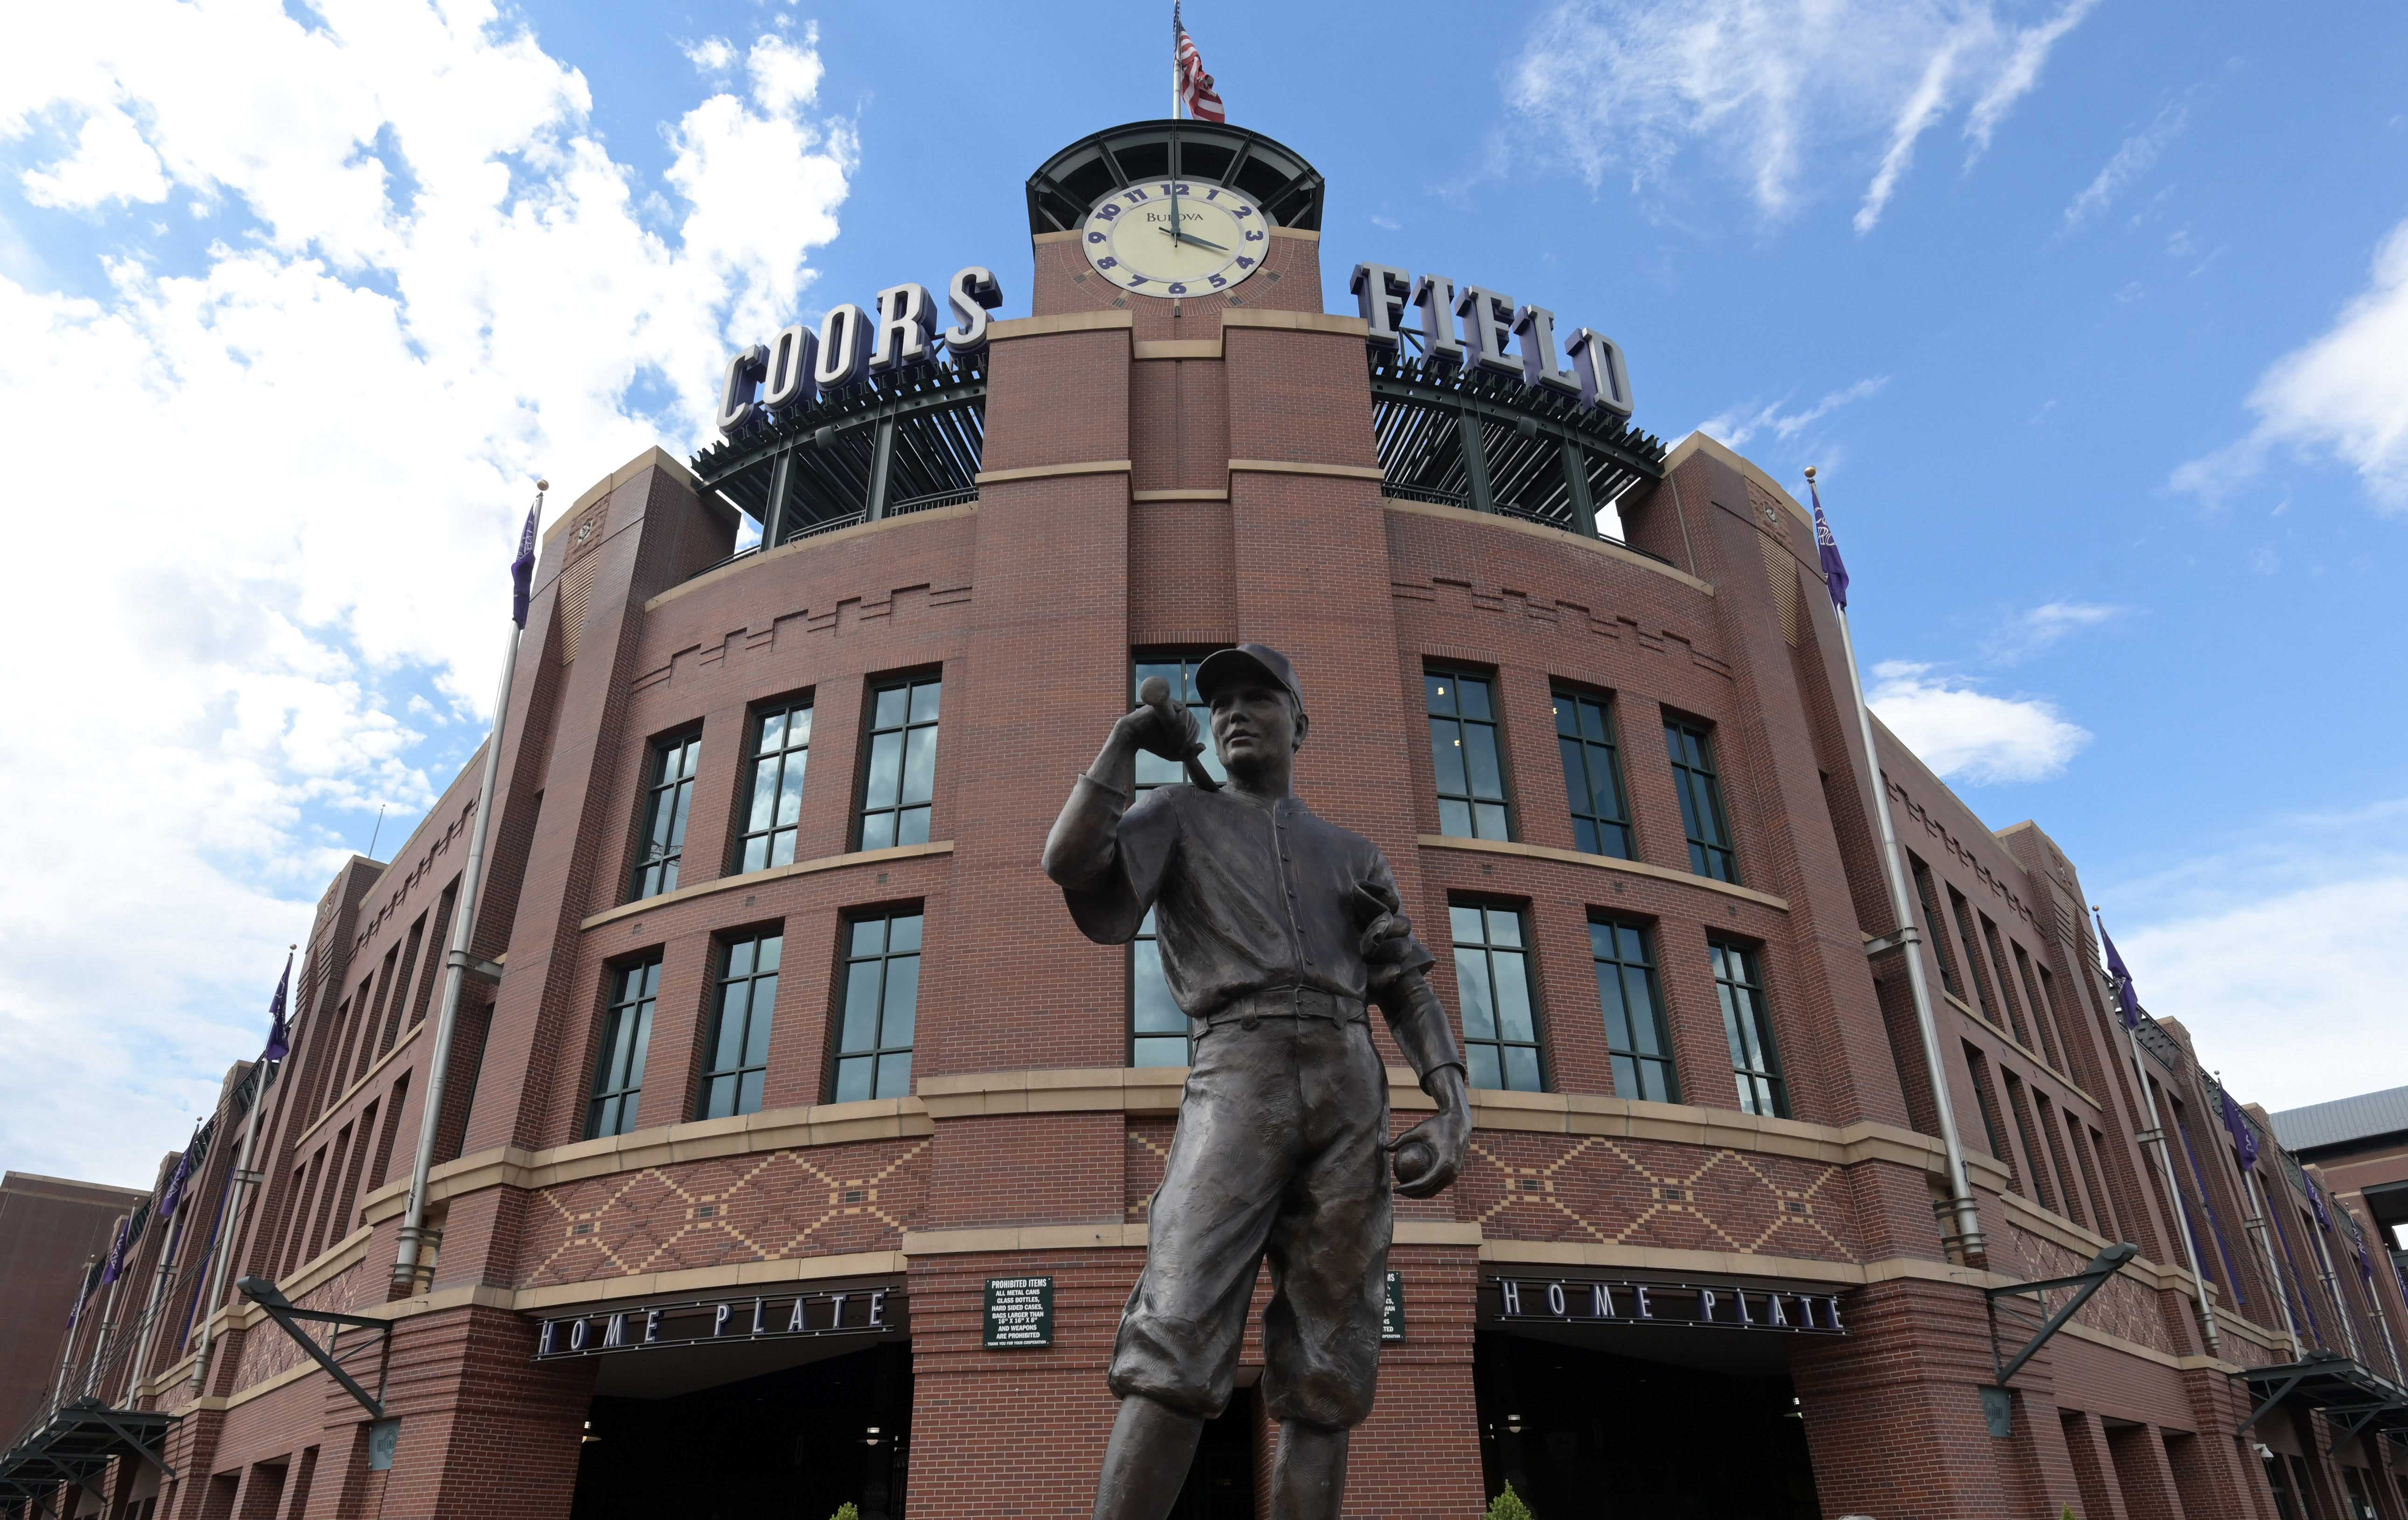 2021 MLB All-Star Game will be played at Denver s Coors Field after event pulled out of Atlanta